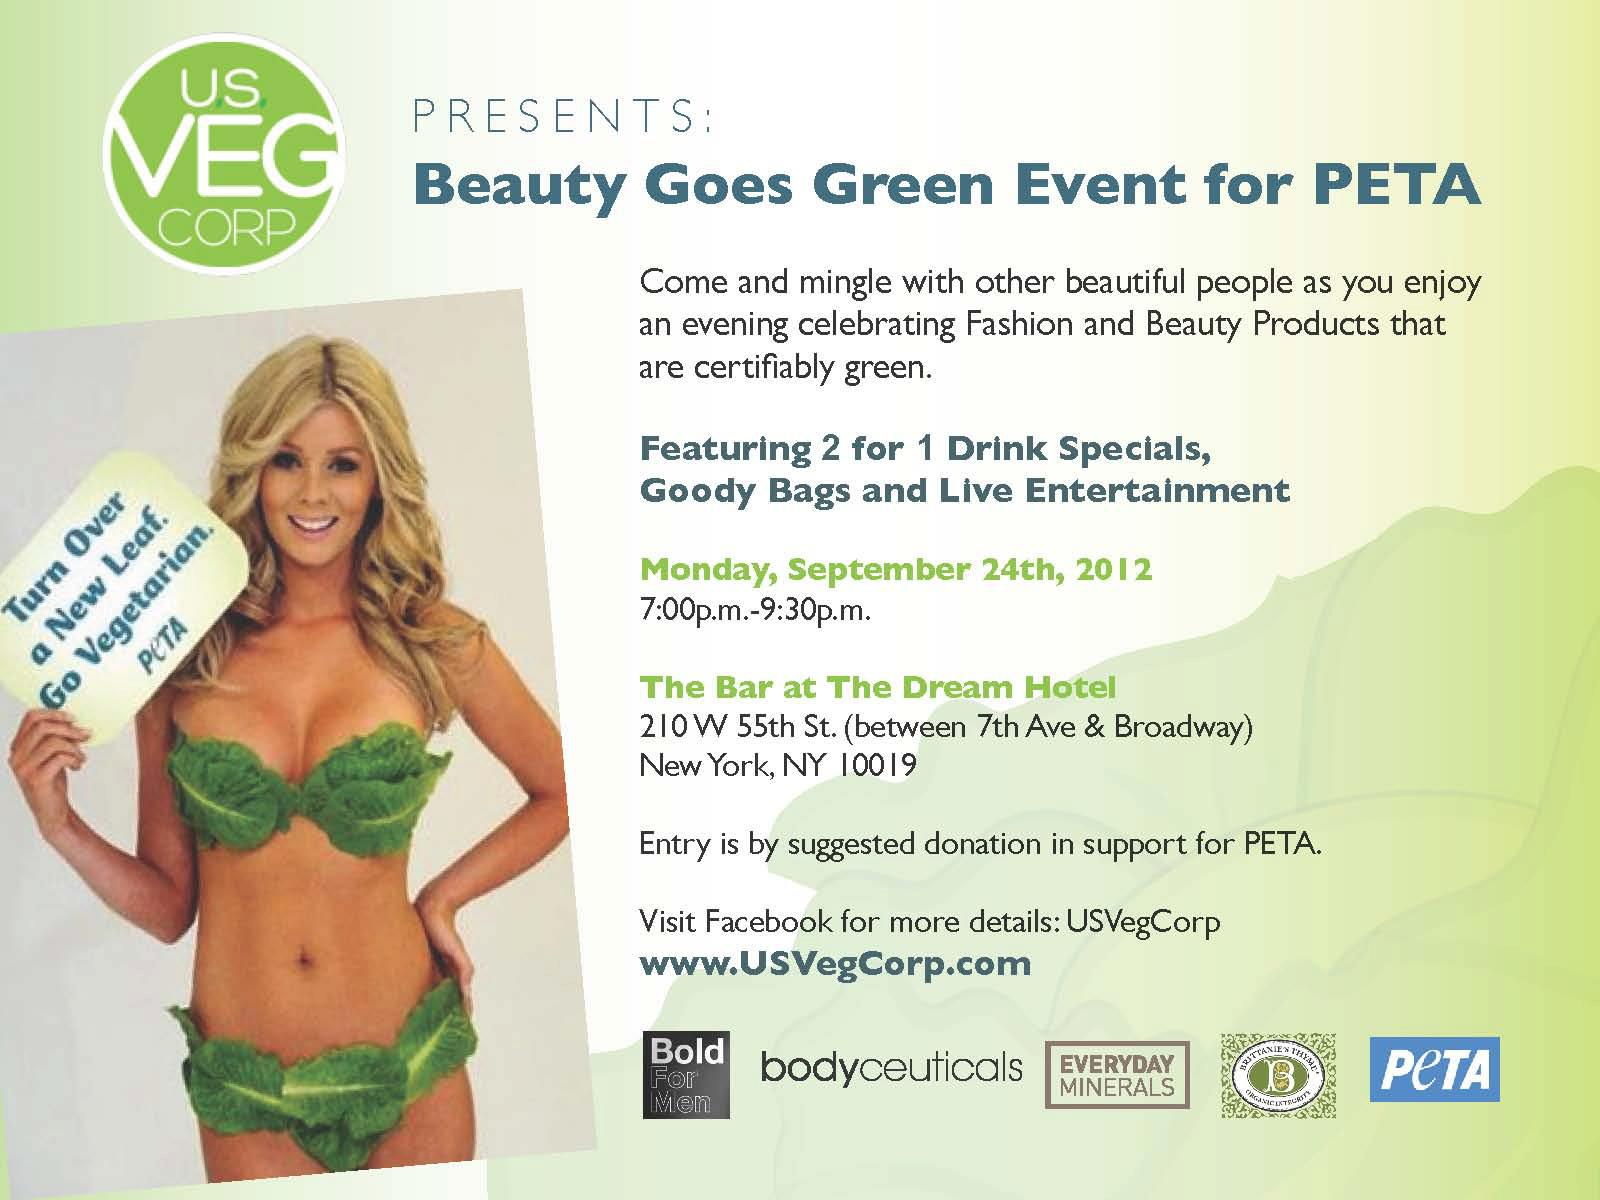 Beauty Goes Green Event for PETA